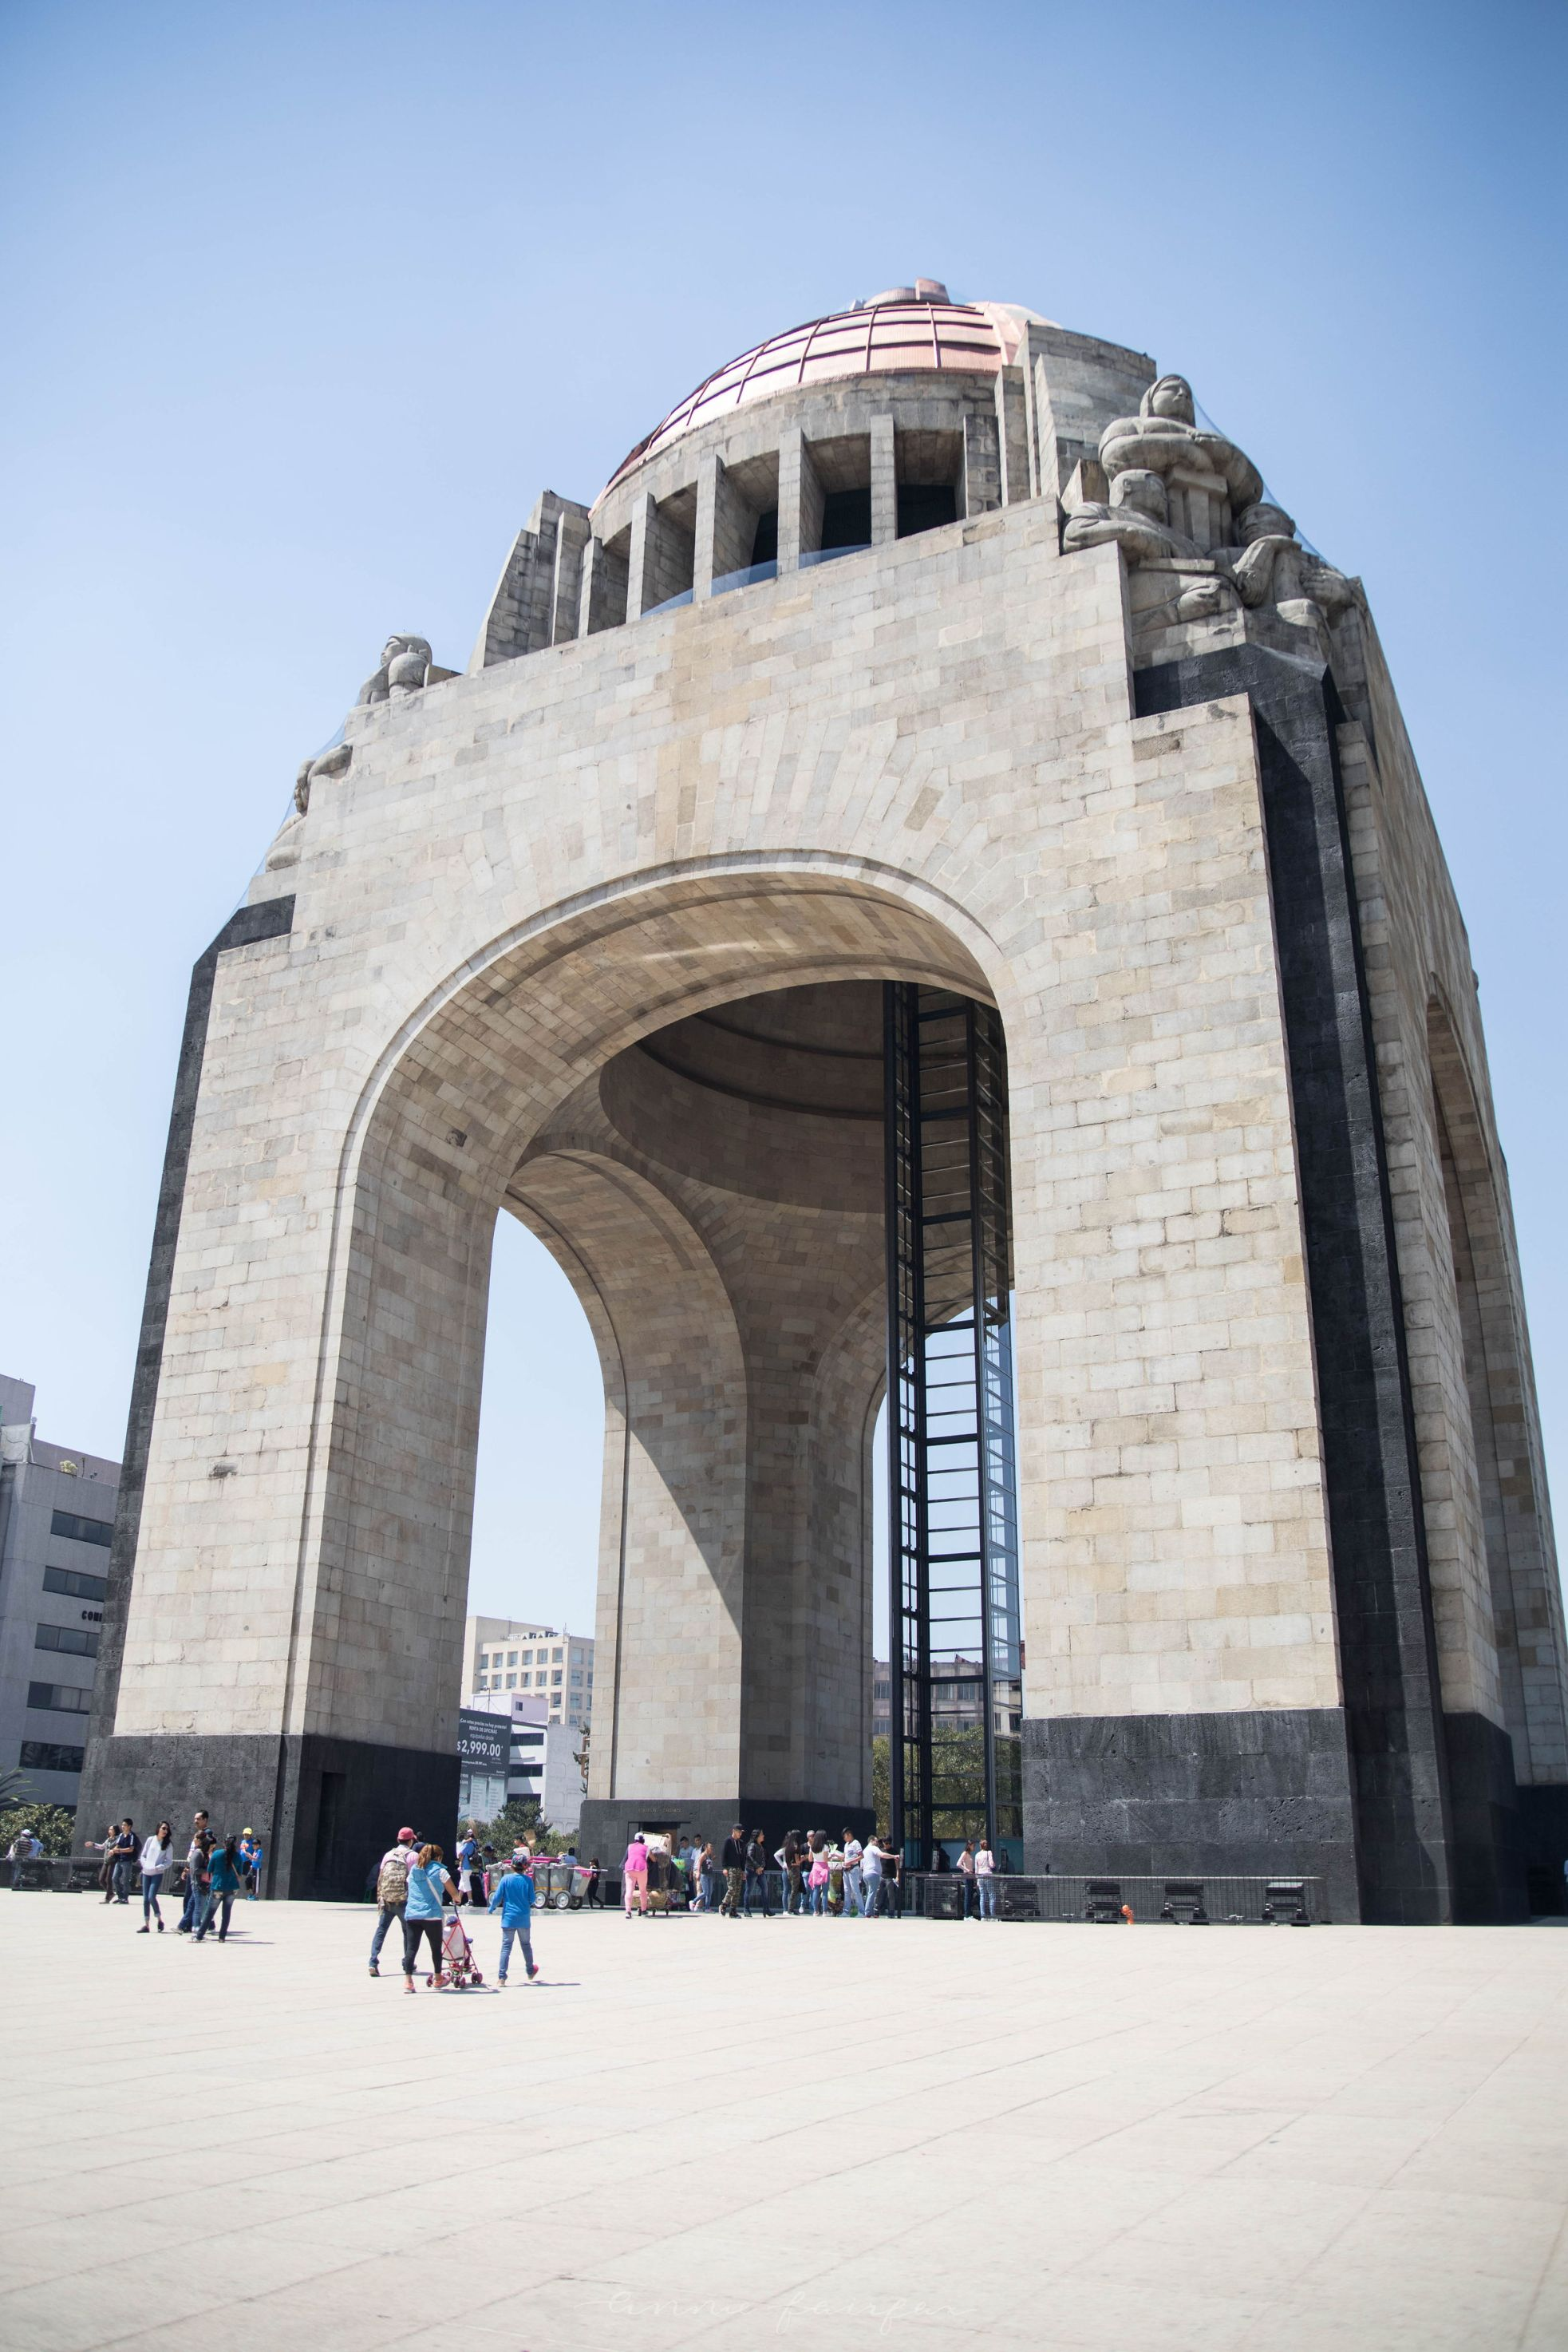 Monumento a la Revolución The Complete Traveler's Guide to Mexico City Mexico Where to Stay What to Eat Where to Visit What to Do Places to Avoid How to Stay Safe in Mexico City Monument of the Revolution